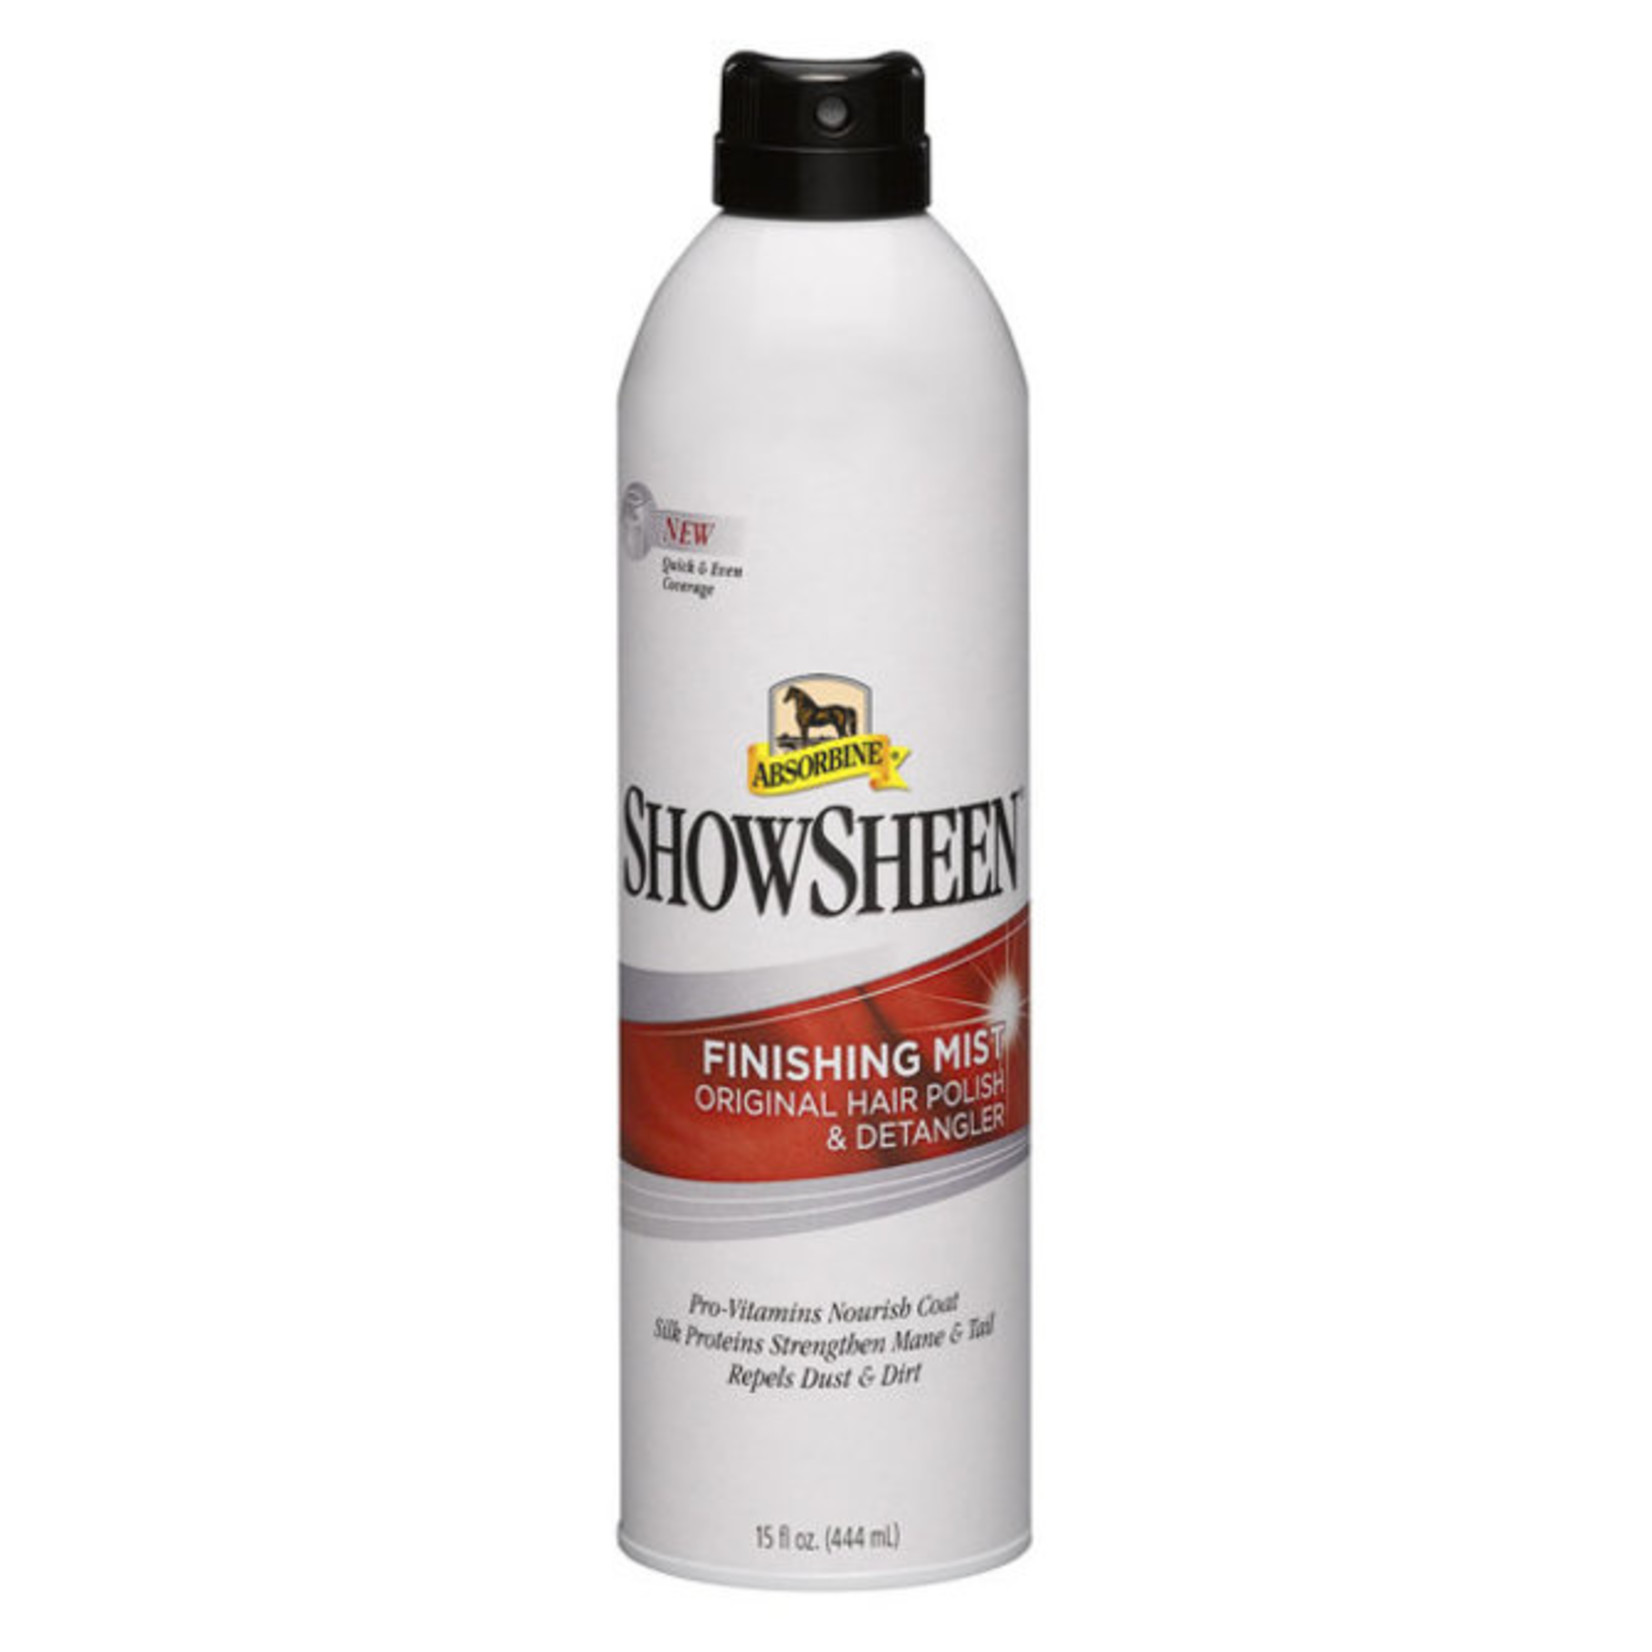 Showsheen Finishing Mist 15fl oz